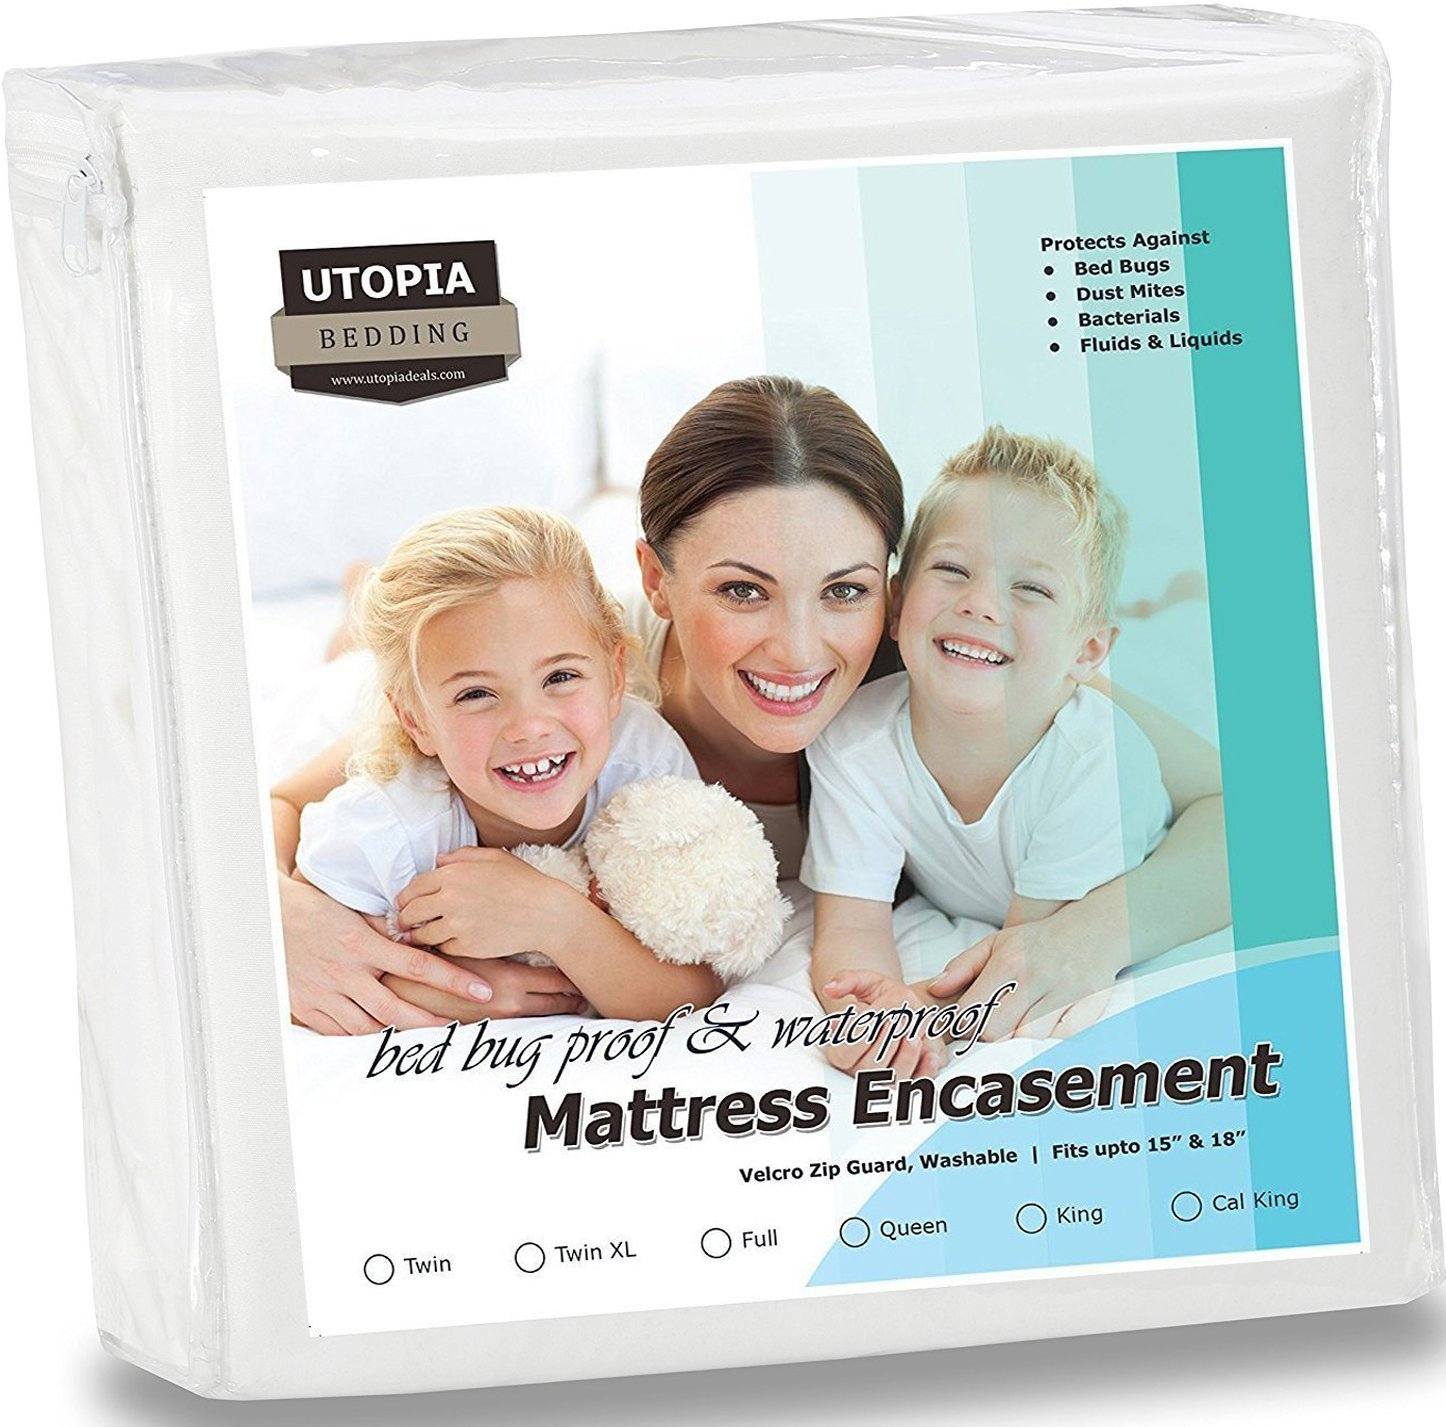 The 7 Best Mattress Encasements – Bed Bug Proof your Mattress 3